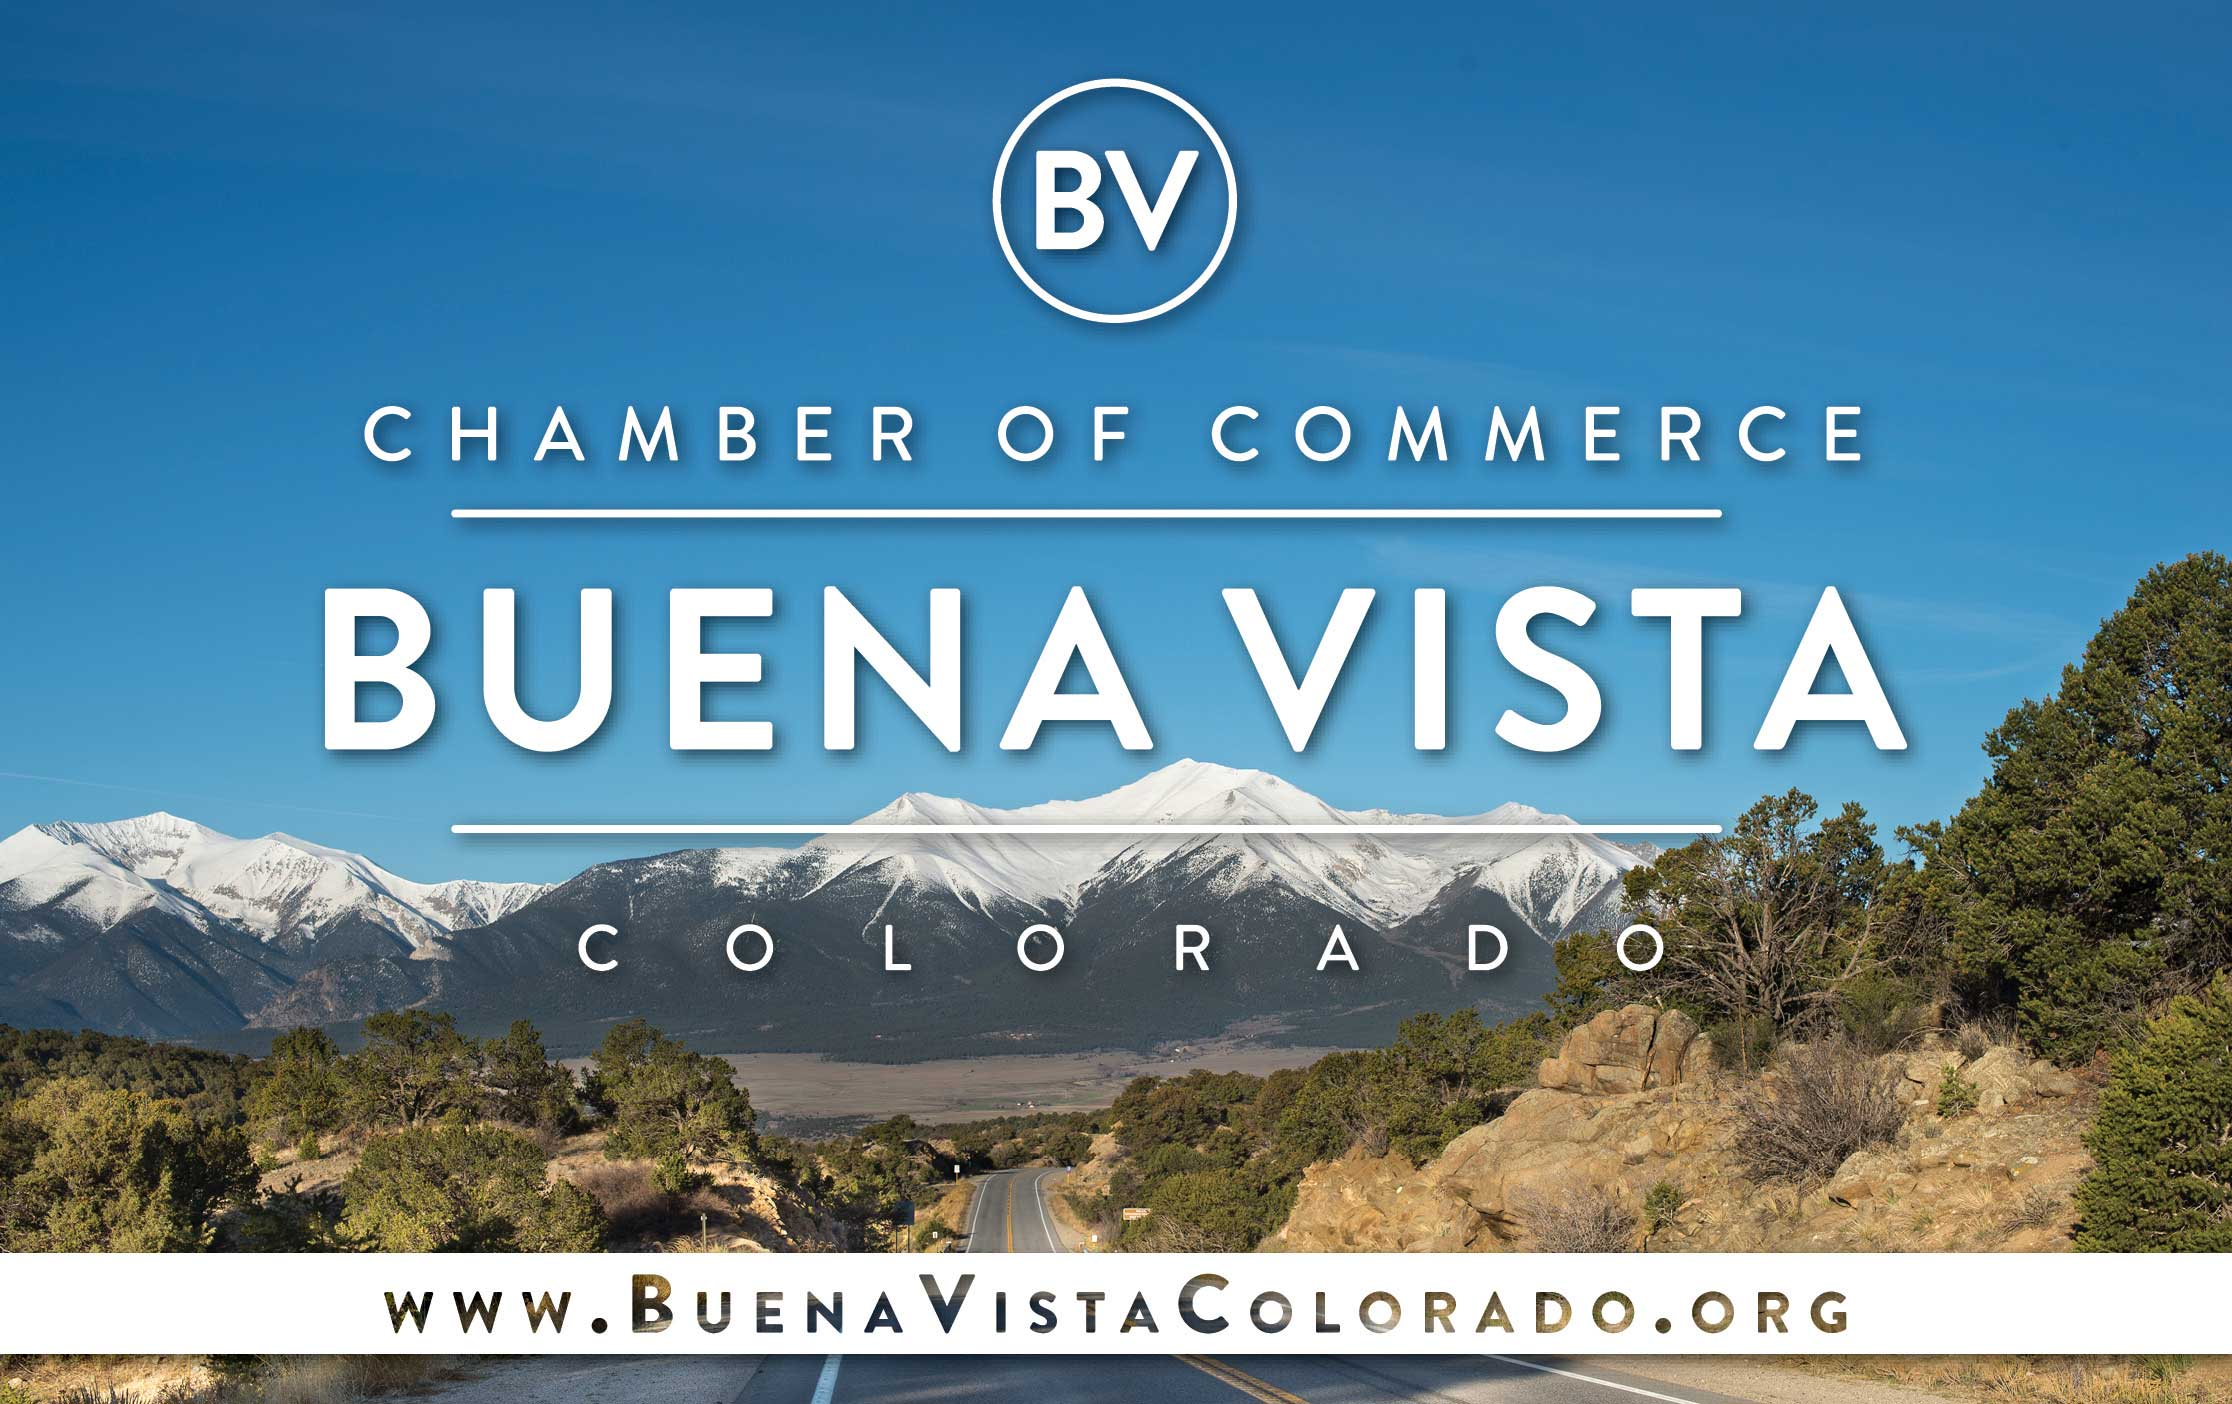 Buena Vista Chamber of Commerce